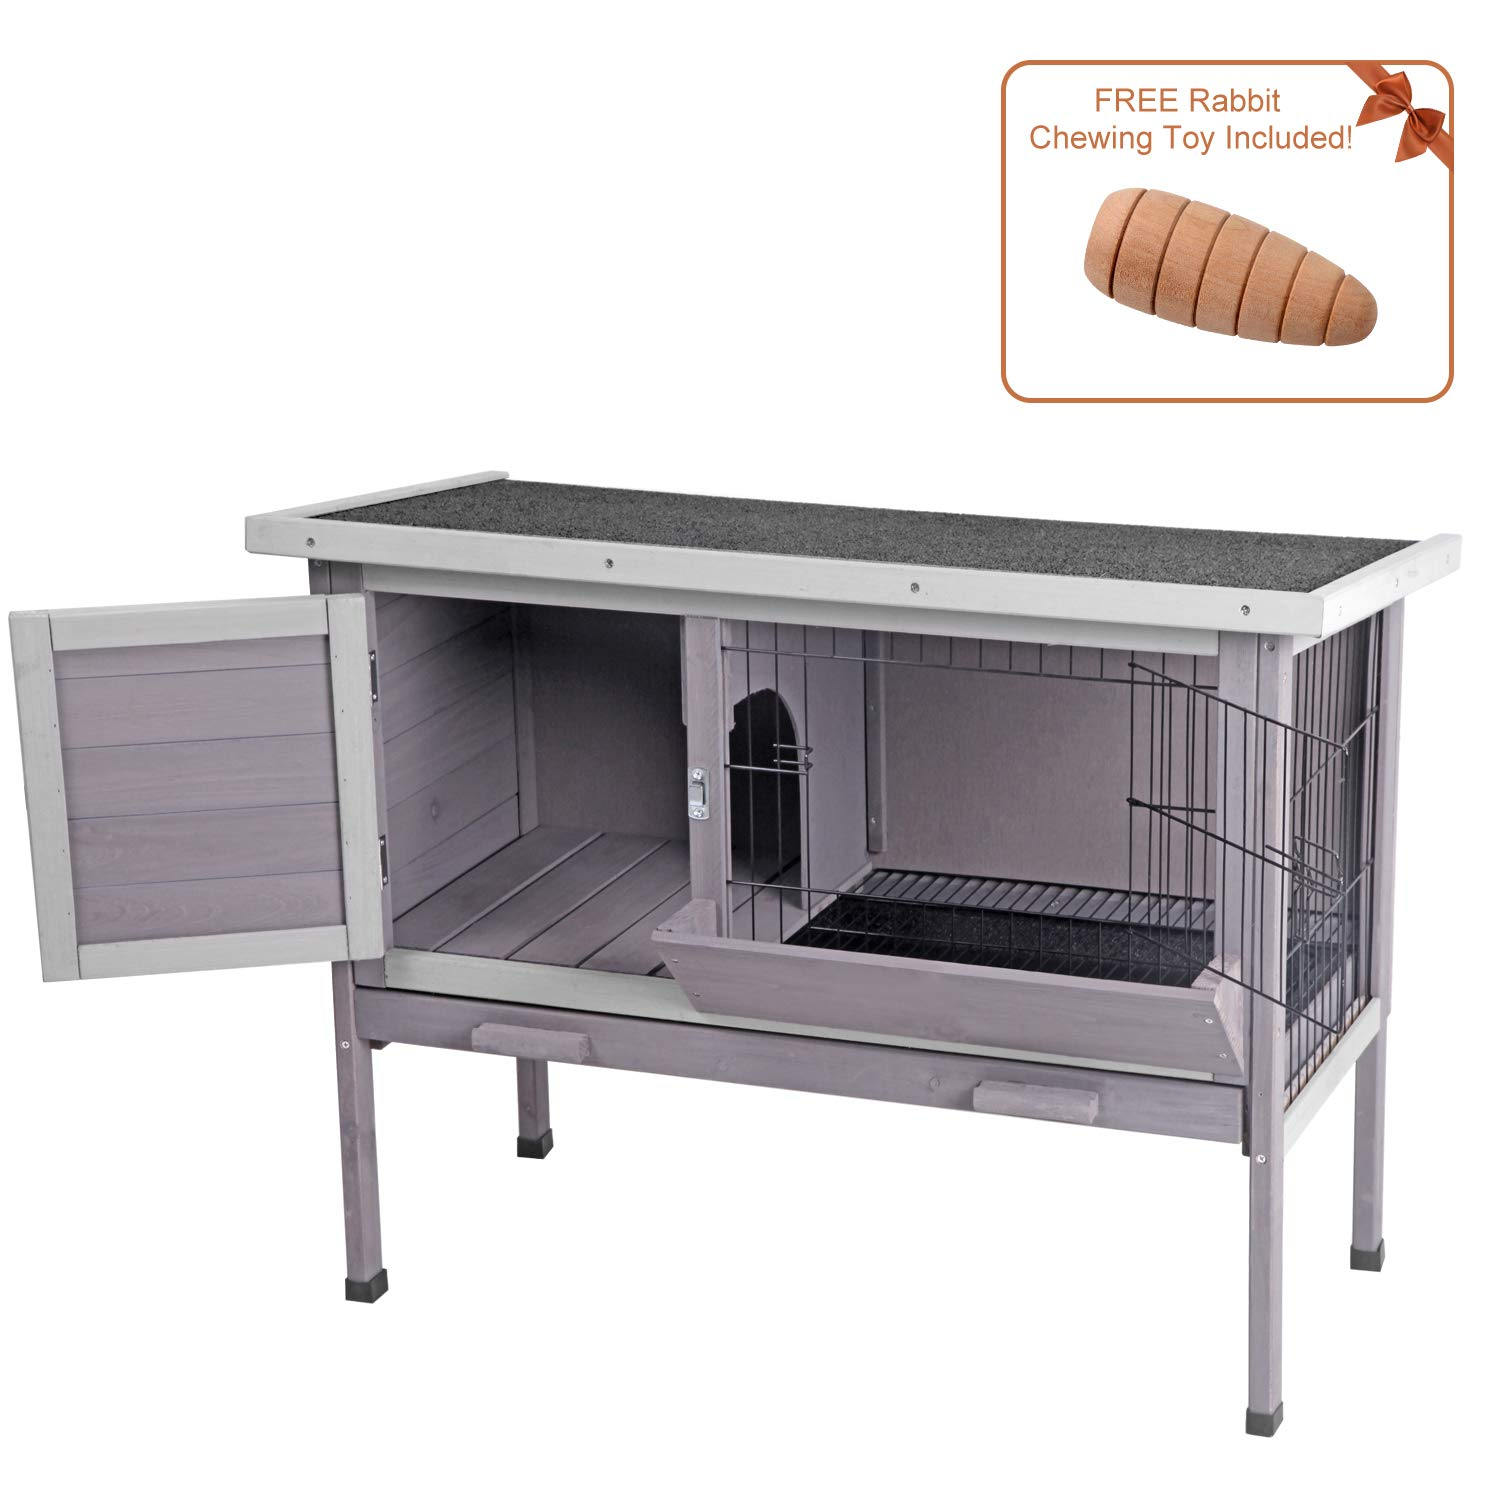 Aivituvin Outdoor Rabbit Hutch, Wooden Bunny Cages Indoor with Deeper Leakproof Tray - Upgrade with Metal Wire Pan (Grey, Rabbit Hutch #001-B) by Aivituvin